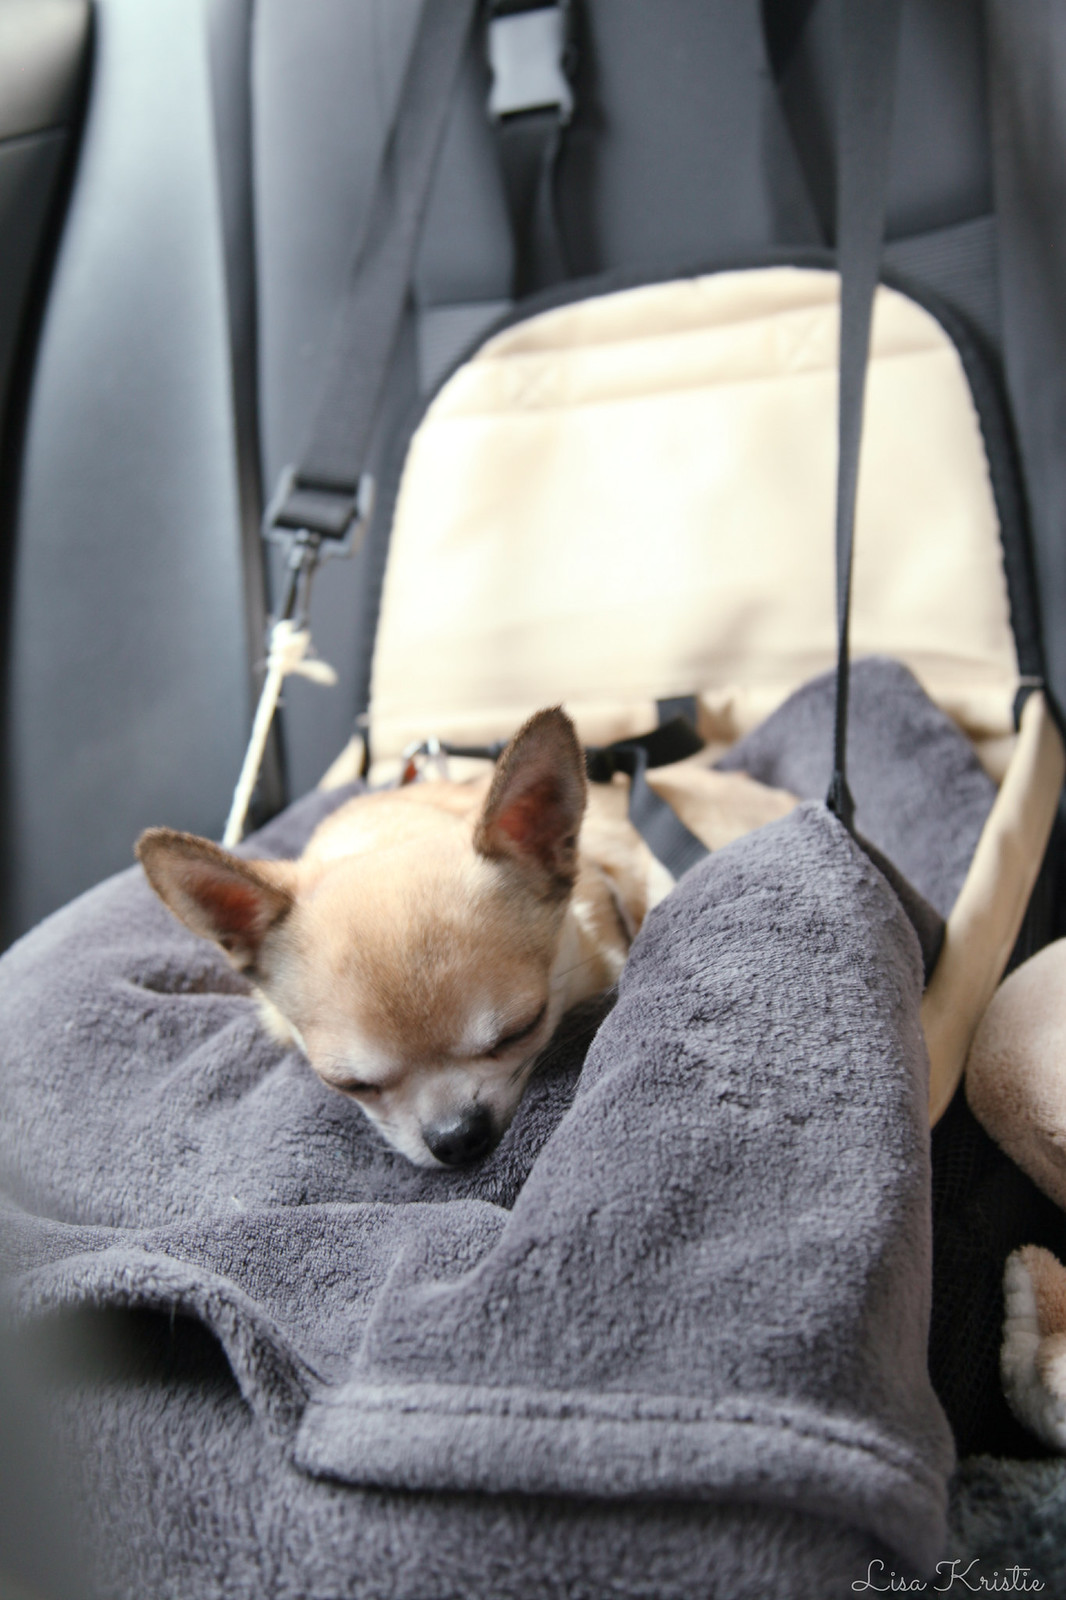 cute chihuahua tiny dog sleeping car seat safety travel seatbelt harness body blanket driving